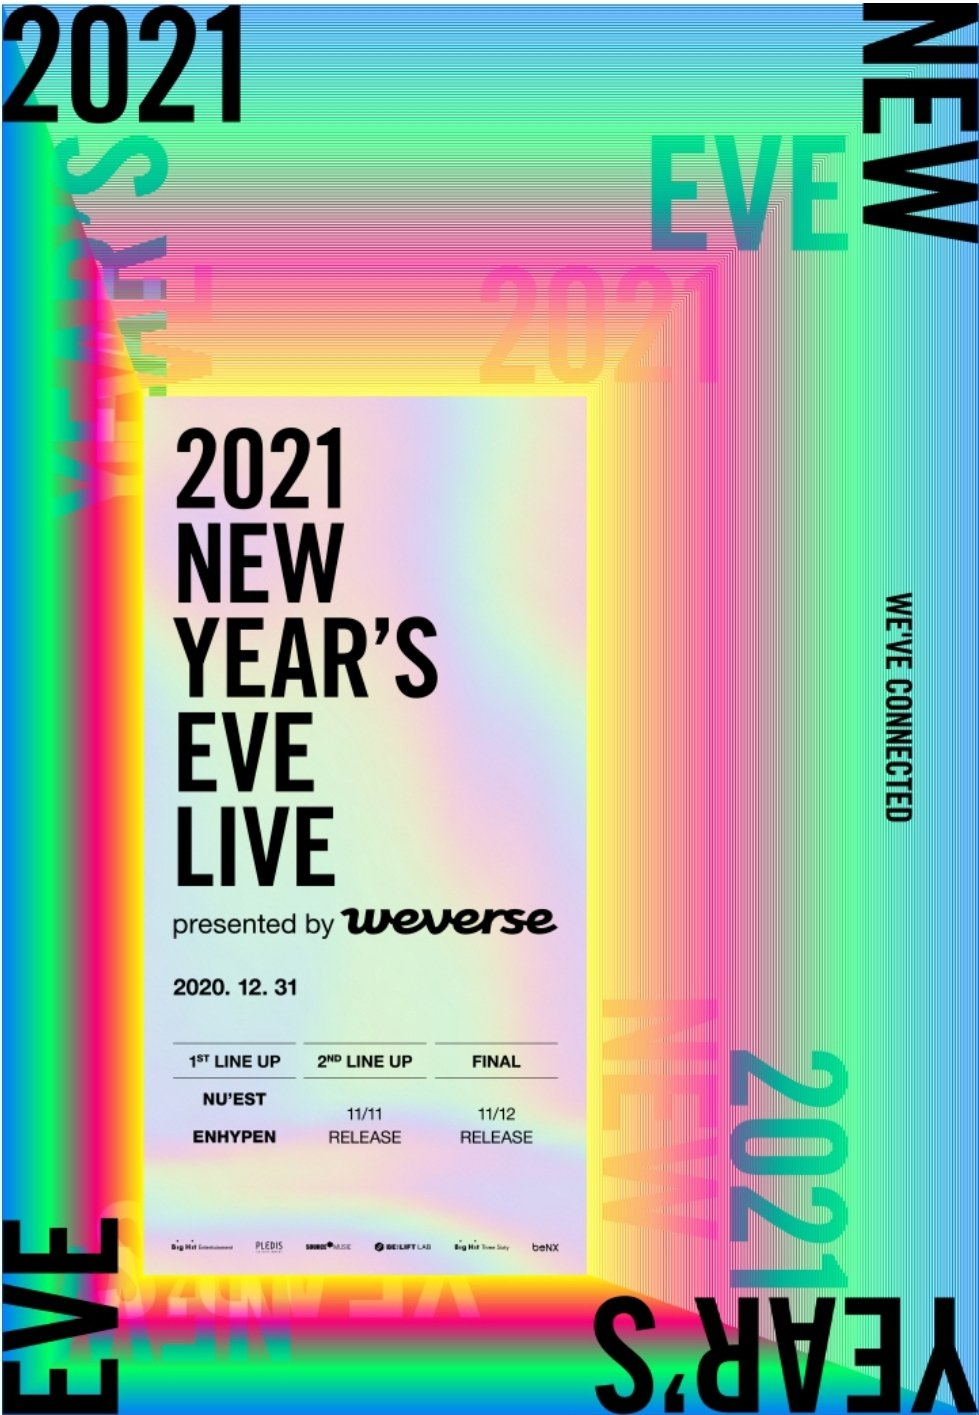 2021 NEW YEAR'S EVE LIVE By Weverse: Lineup And Live Stream | Kpopmap - Kpop, Kdrama and Trend ...